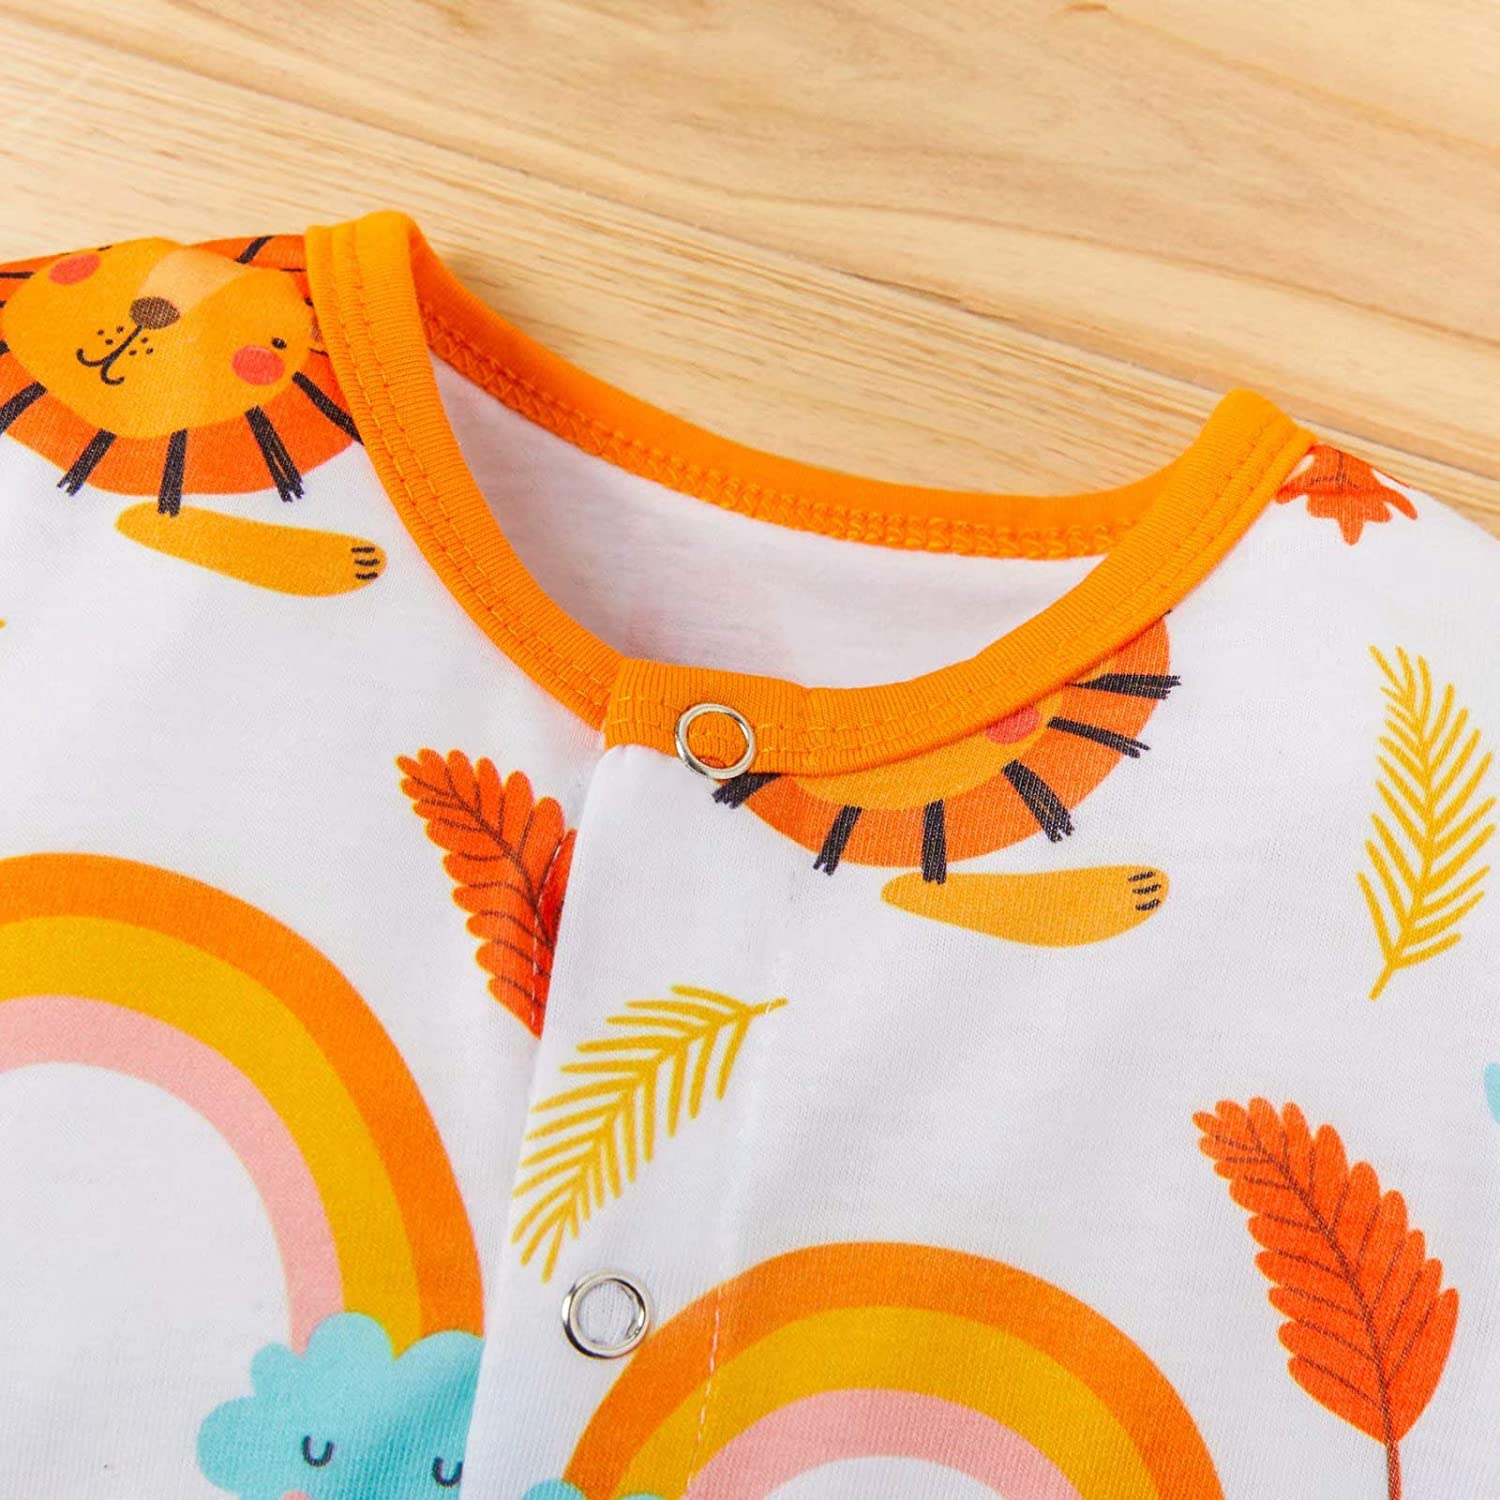 IFFEI Baby Long Sleeve Romper Cartoon Lion Rainbow Printed Jumpsuit Outfit for Toddler Girls Boys